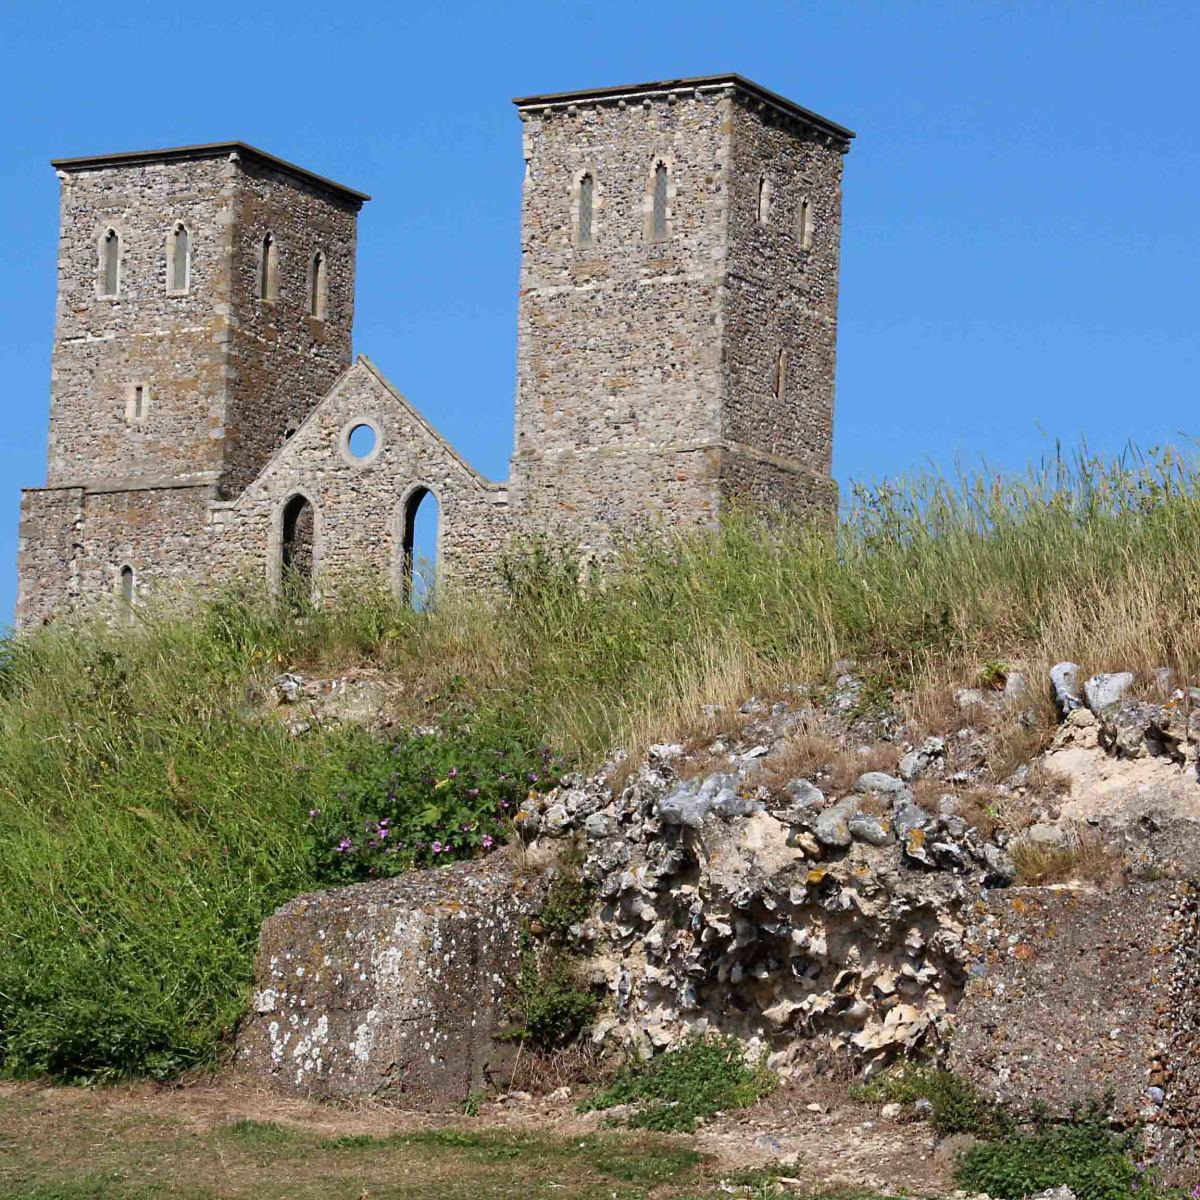 History through the ages - The ruined church towers are 900 years old. But the crumbling Roman wall in the foreground had aleady existed for 900 years before the towers were ever built